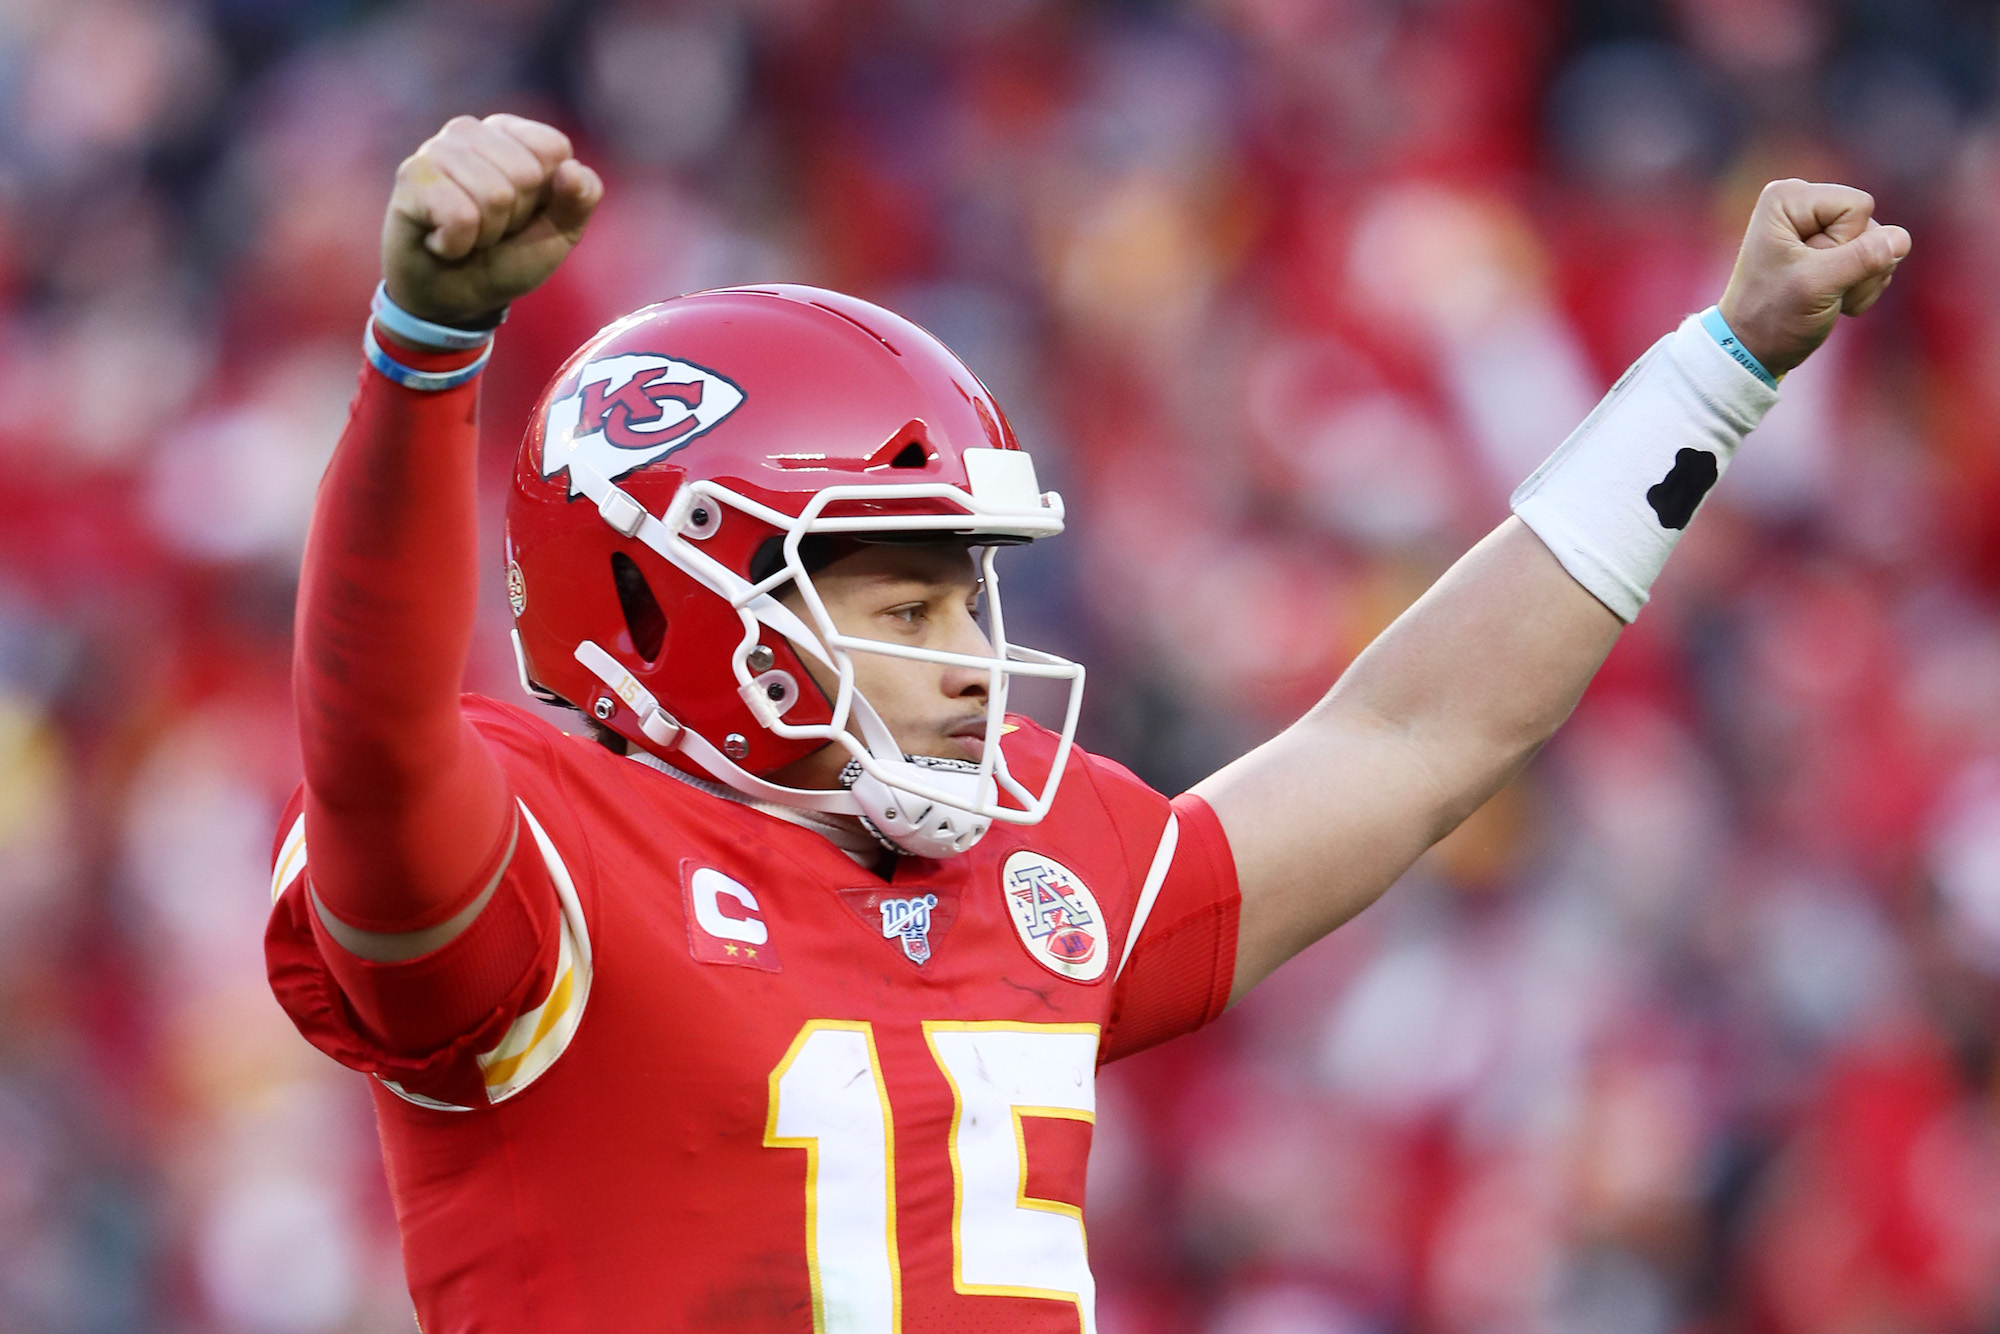 Thanks to his $450 million contract, Patrick Mahomes total salary will exceed the GDP of several small countries.